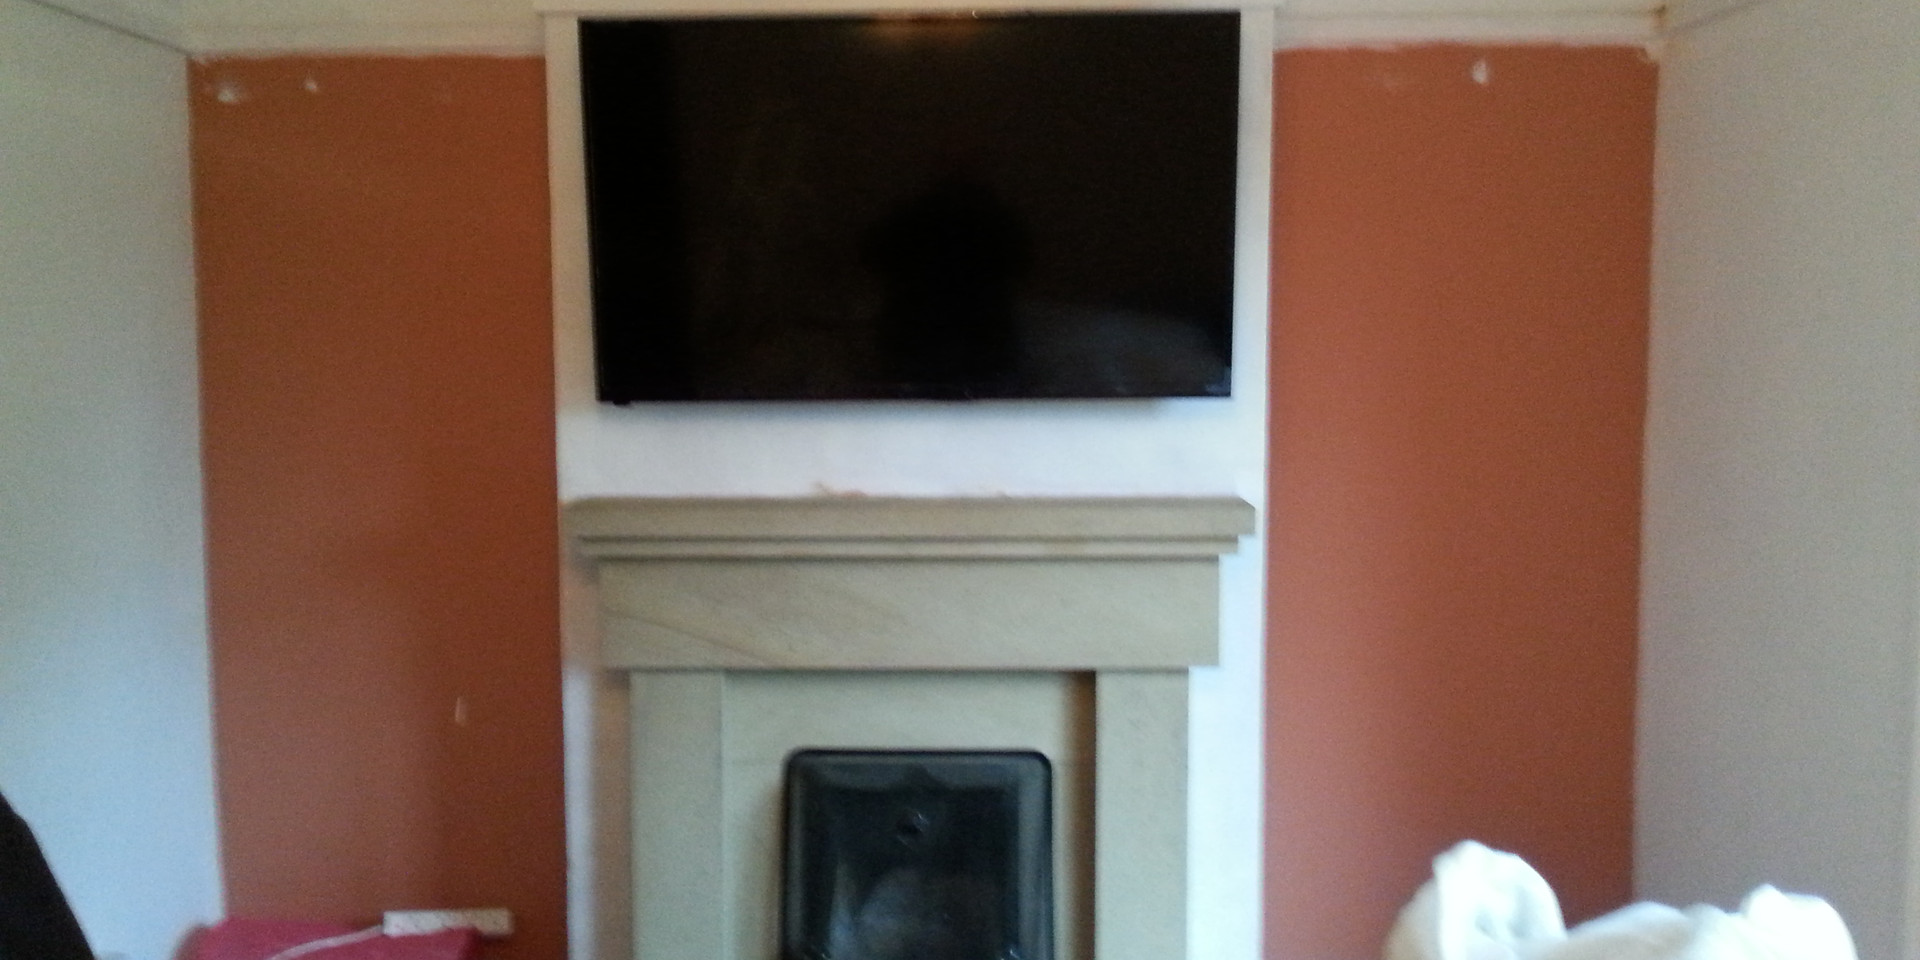 TV wall mounted above a fire place